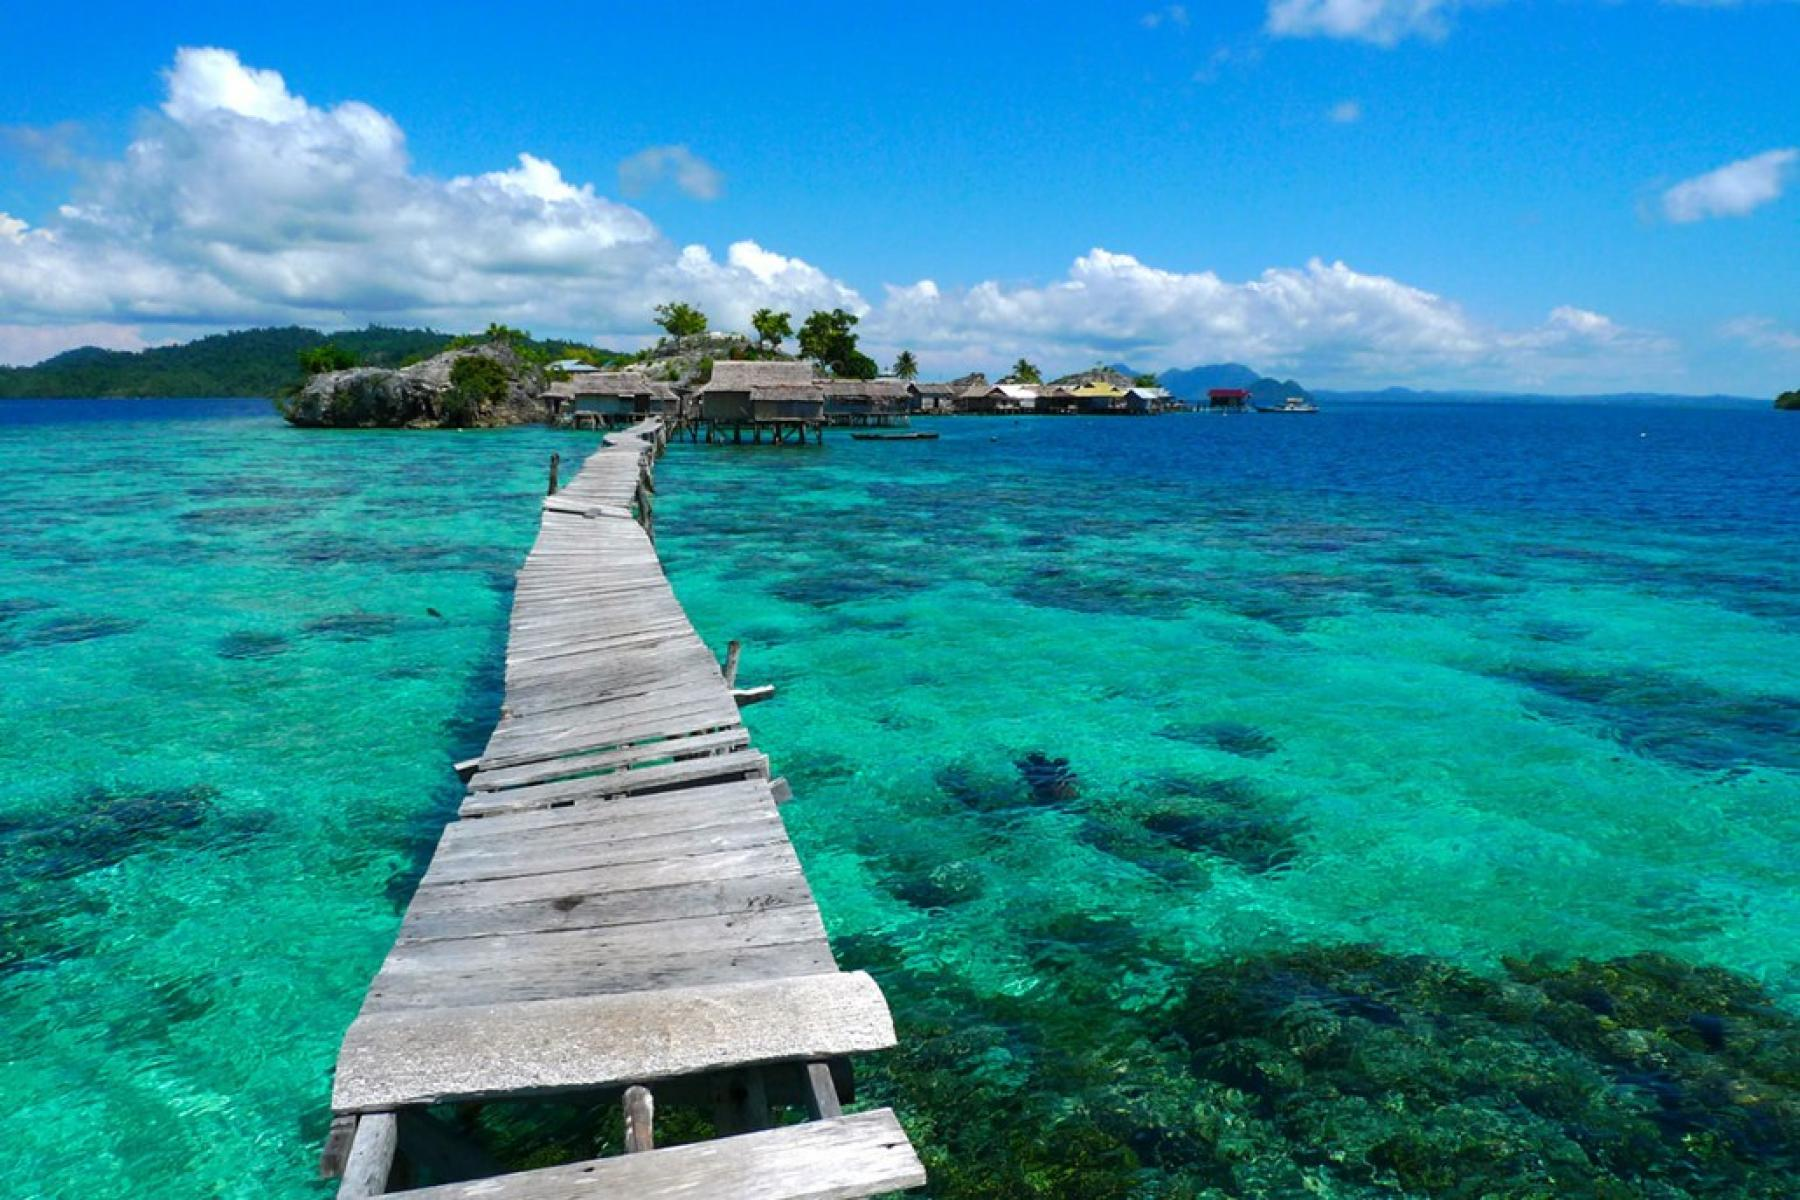 [7D6N] Gorontalo, Togean Islands & Lore Lindu National Park starting at Sulawesi Utara, Indonesia